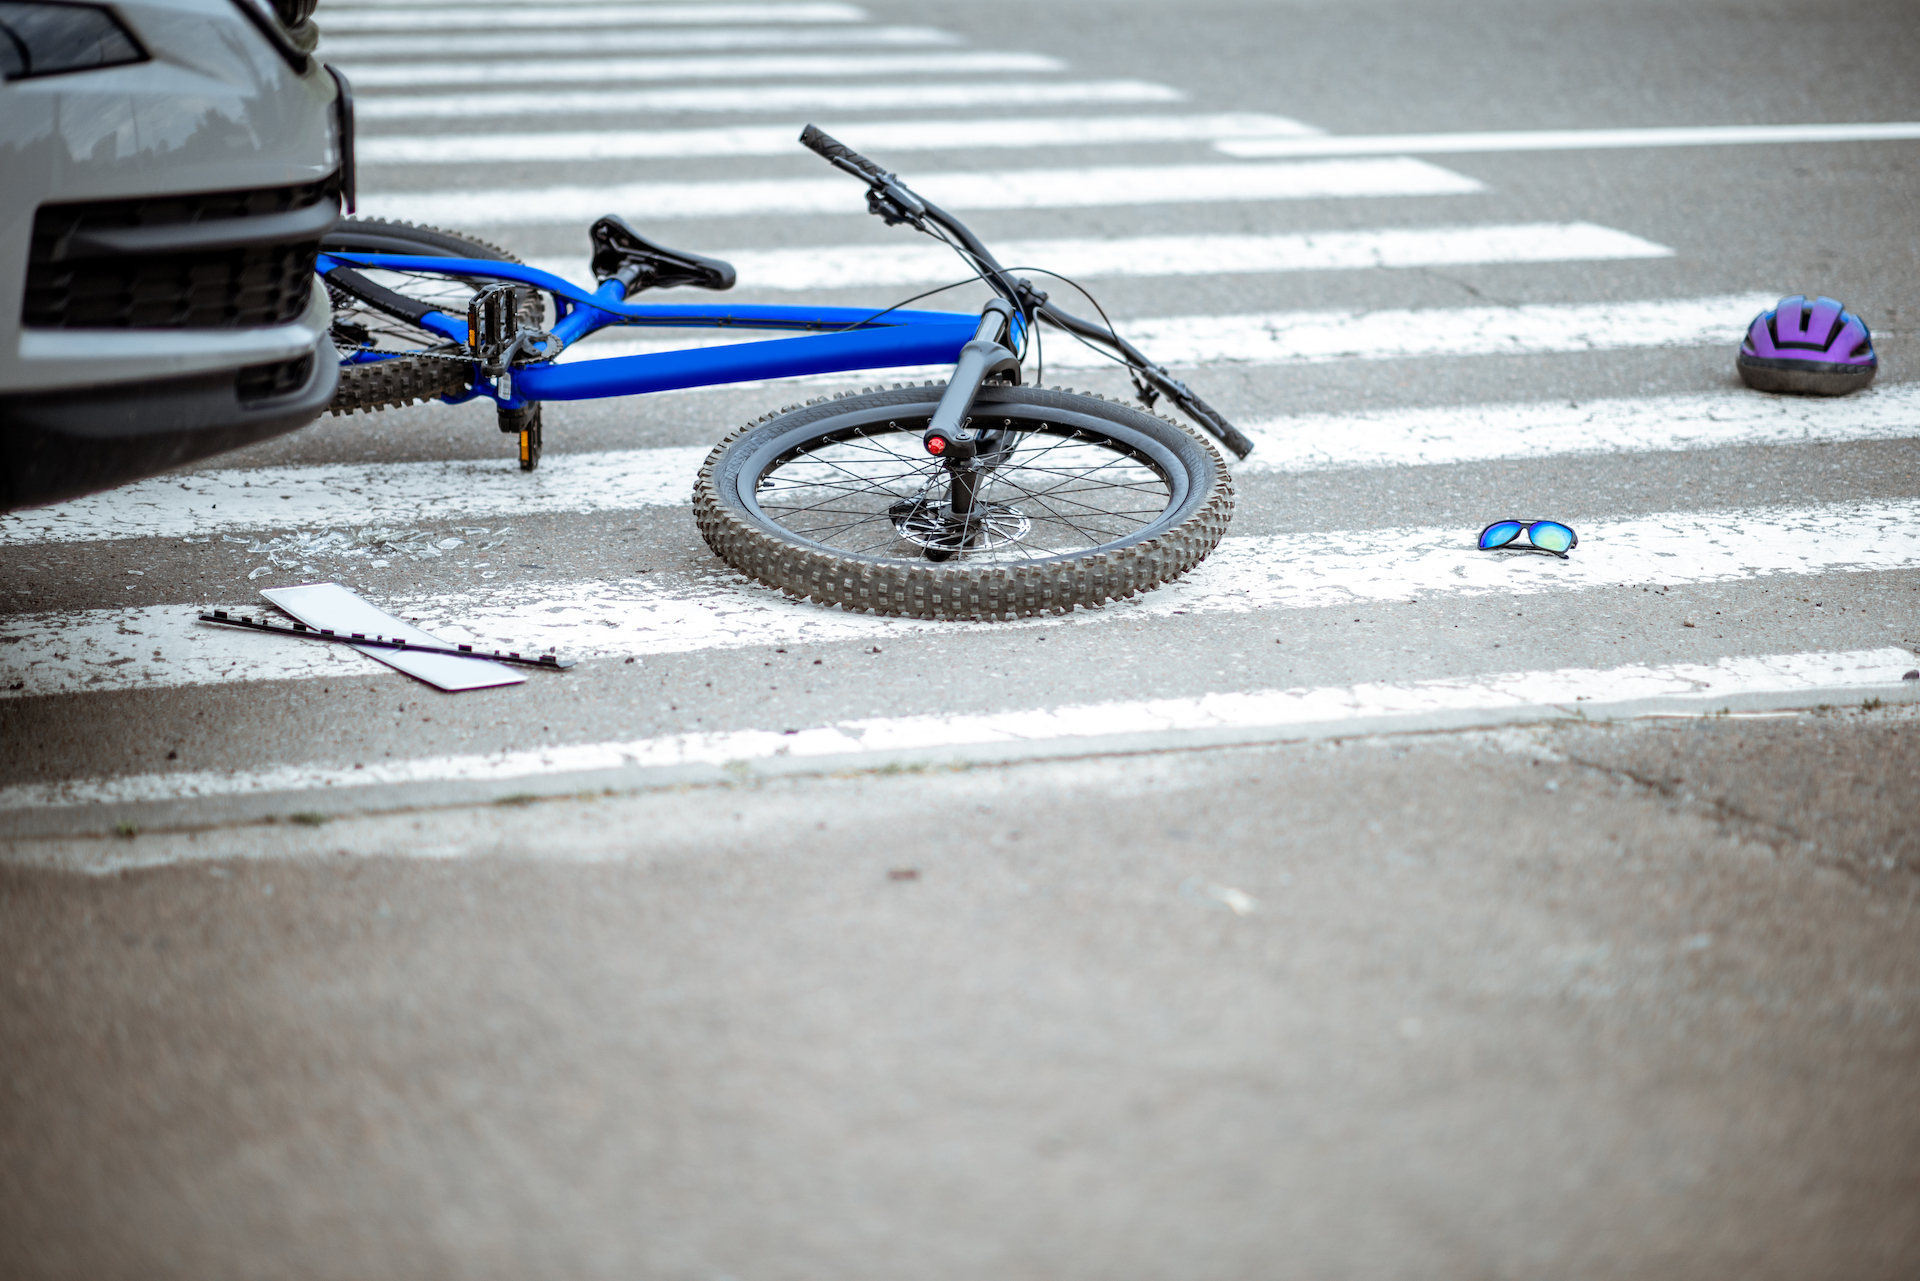 road accident with car and broken bike - Personal Injury Attorney in Nashville - Wrongful Death Attorney, Truck Accident Lawyer, Car Accident Lawyer, and more | Meyers Injury Law